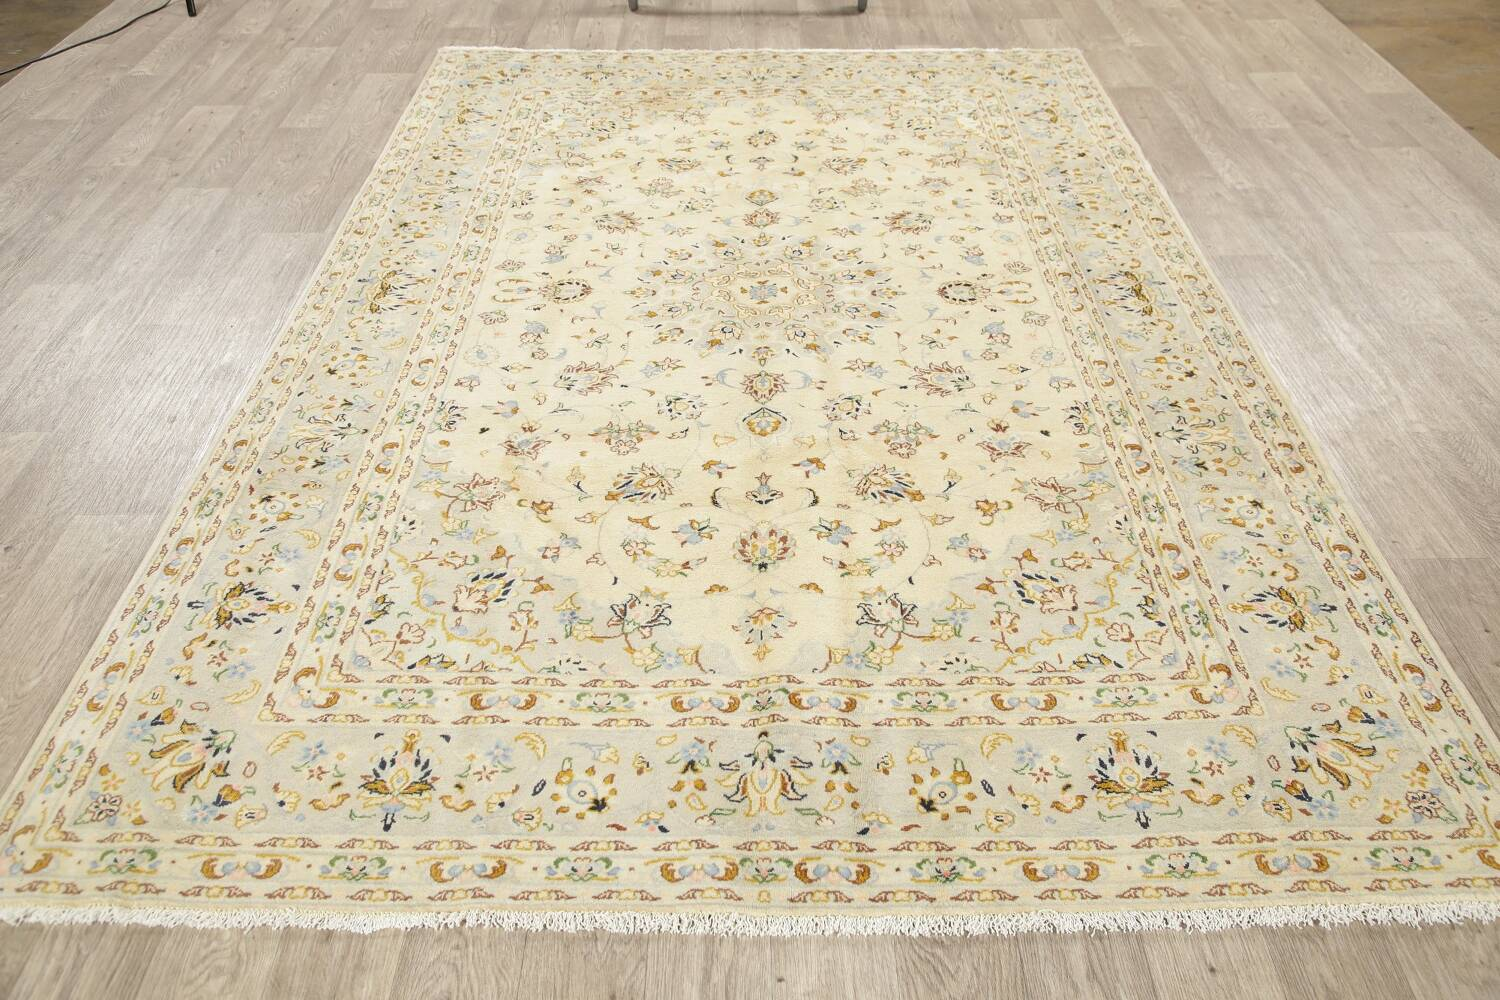 Floral Kashan Persian Area Rug 6x10 image 17